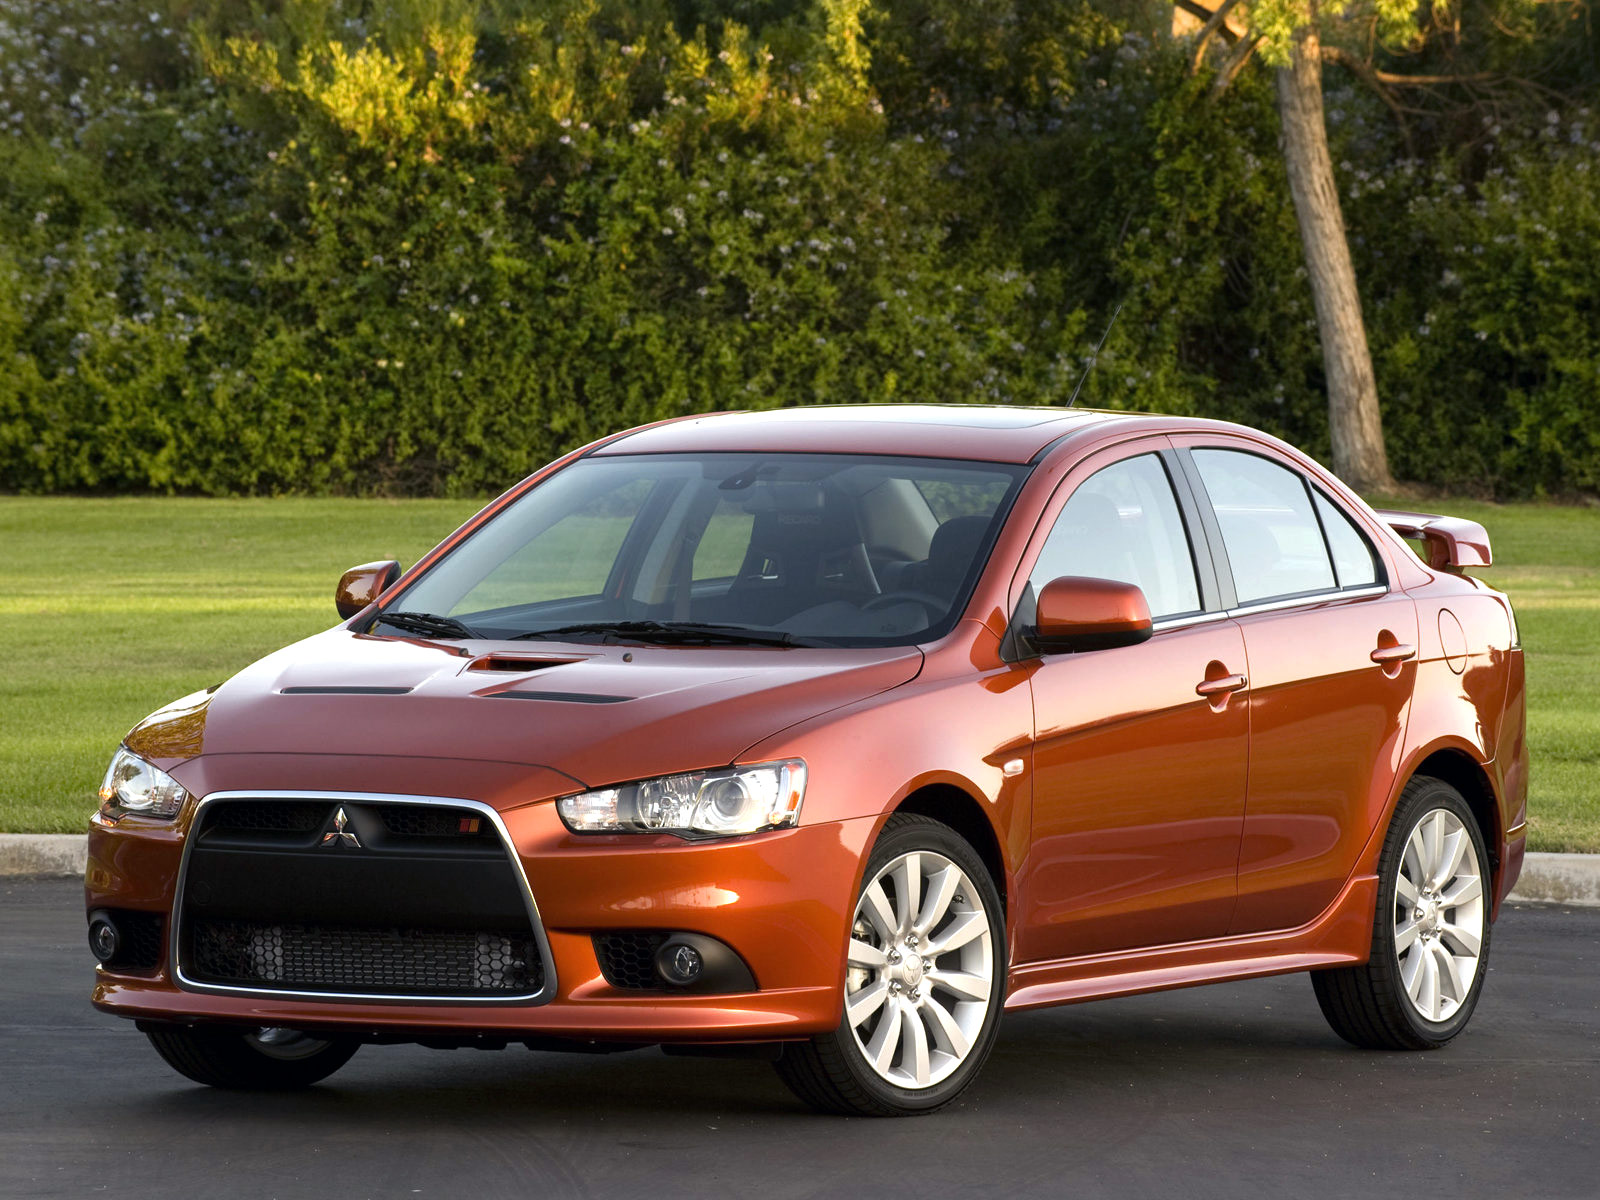 2009 mitsubishi lancer ralliart accident lawyers wallpapers. Black Bedroom Furniture Sets. Home Design Ideas